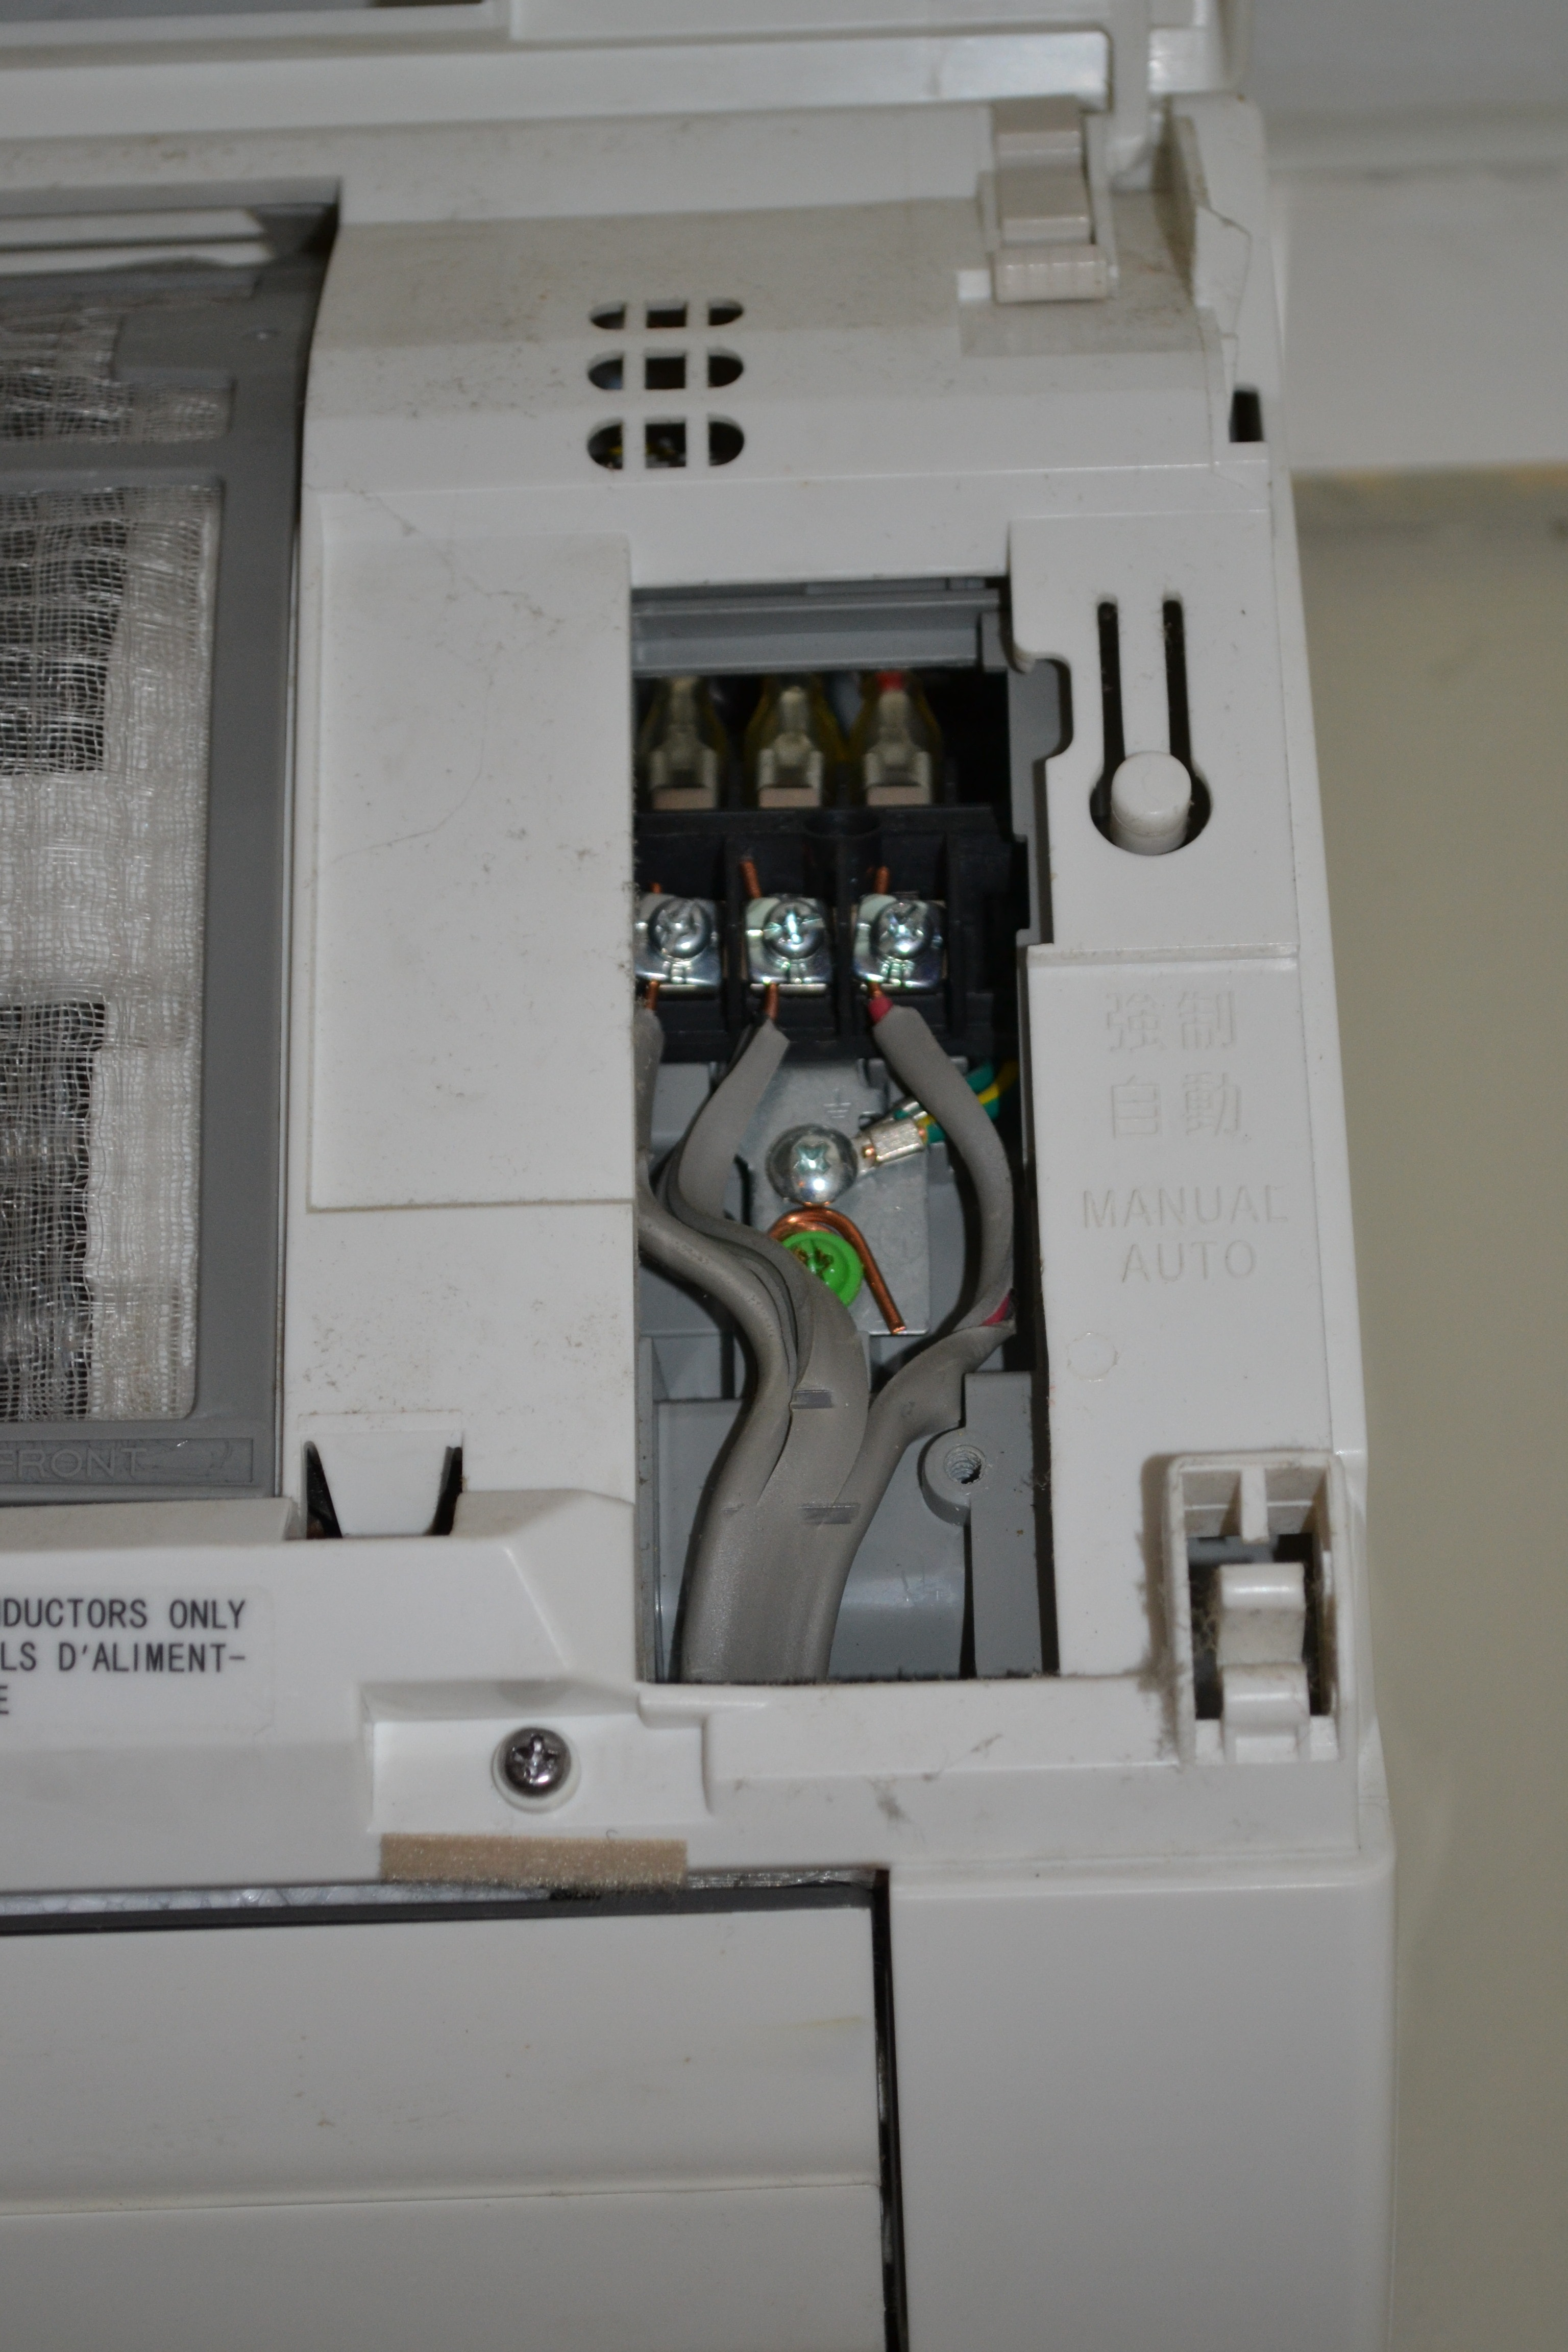 mr slim thermostat wiring diagram manual e books  electrical specs for installing ductless mini splits \\u0026 hvac units mr slim thermostat wiring diagram